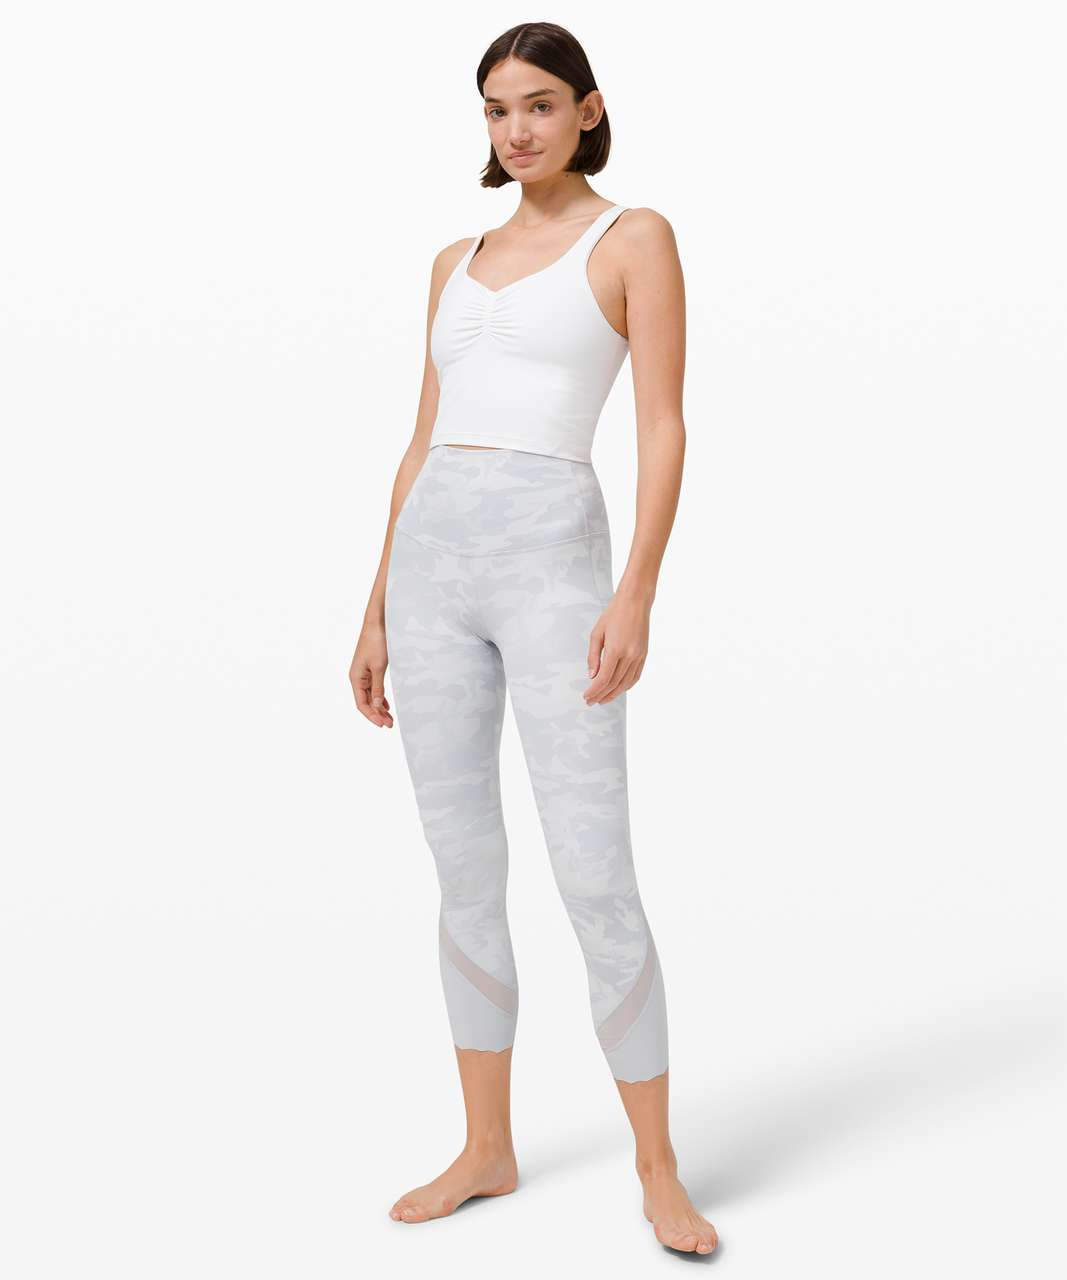 """Lululemon Wunder Under High-Rise Crop 23"""" *Updated Scallop Full-On Luxtreme - Incognito Camo Jacquard Alpine White Starlight"""